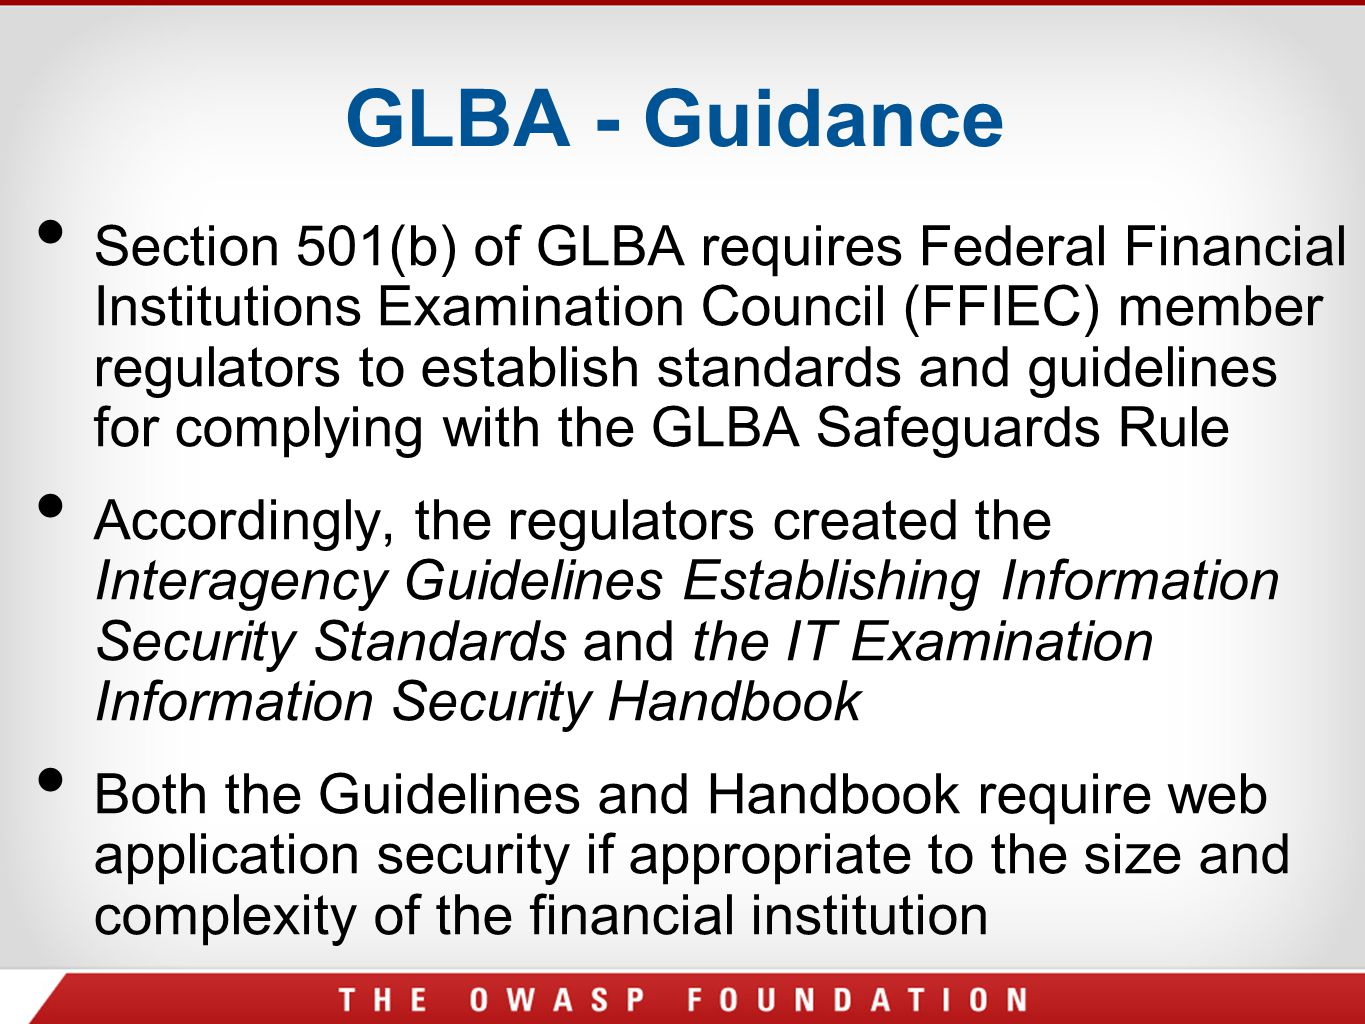 GLBA - Guidance Section 501(b) of GLBA requires Federal Financial Institutions Examination Council (FFIEC) member regulators to establish standards an